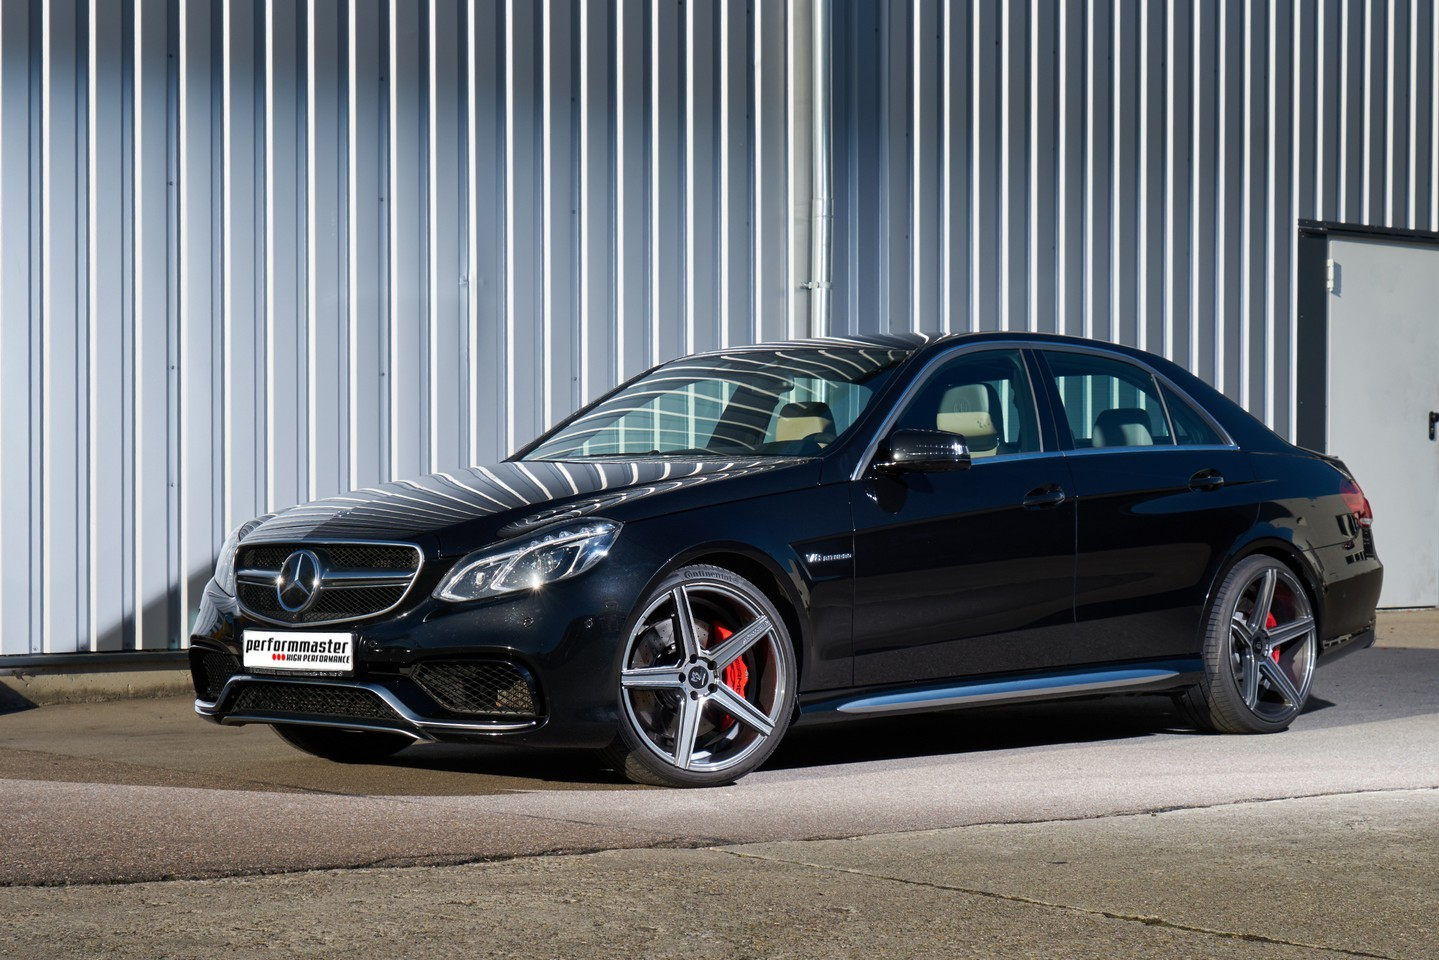 mercedes benz e63 amg tuned by perfommaster to over 700hp carscoops. Black Bedroom Furniture Sets. Home Design Ideas